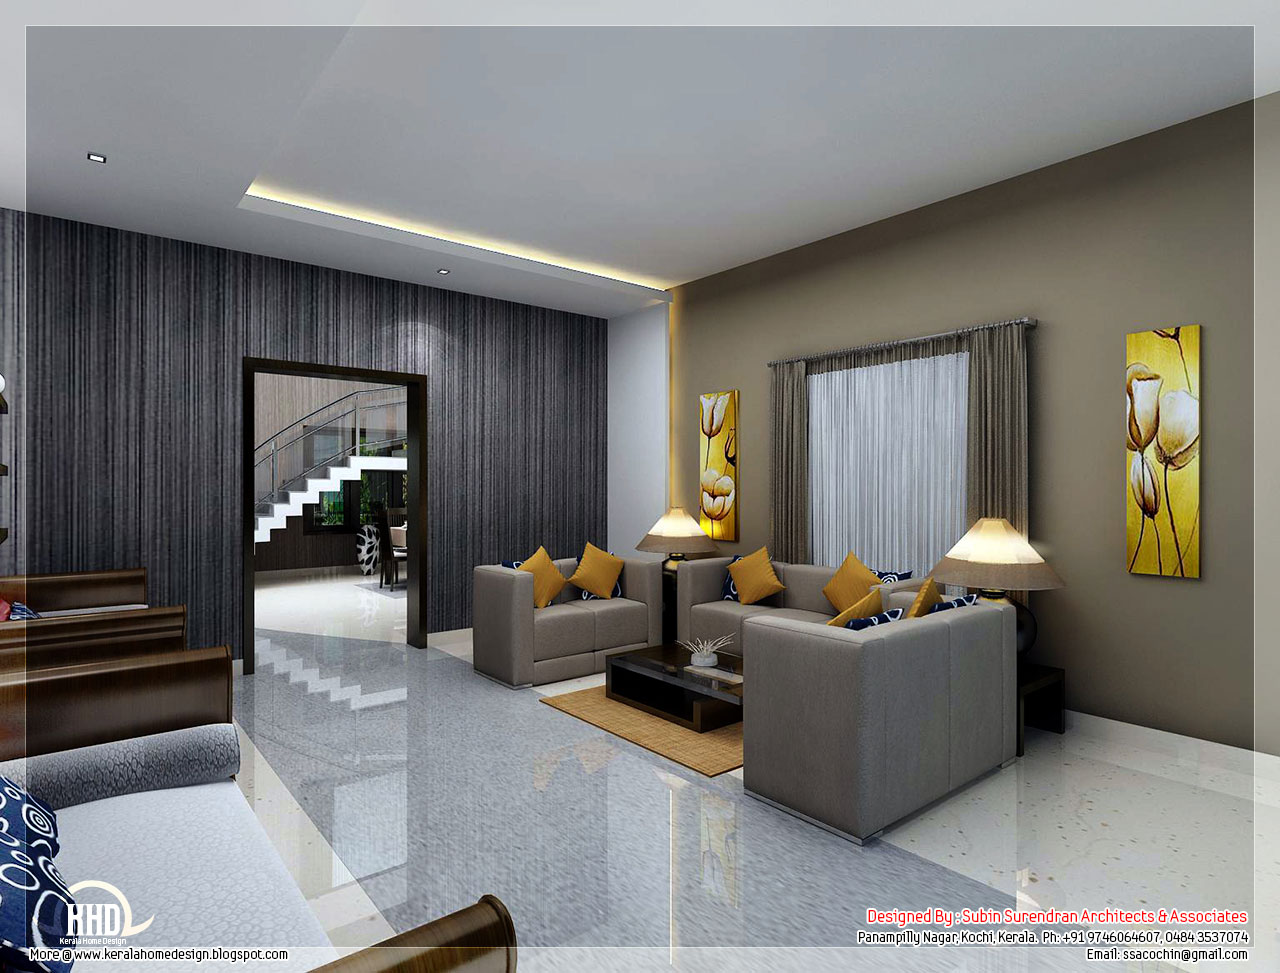 Awesome 3d interior renderings kerala house design for Interior design ideas living room indian style